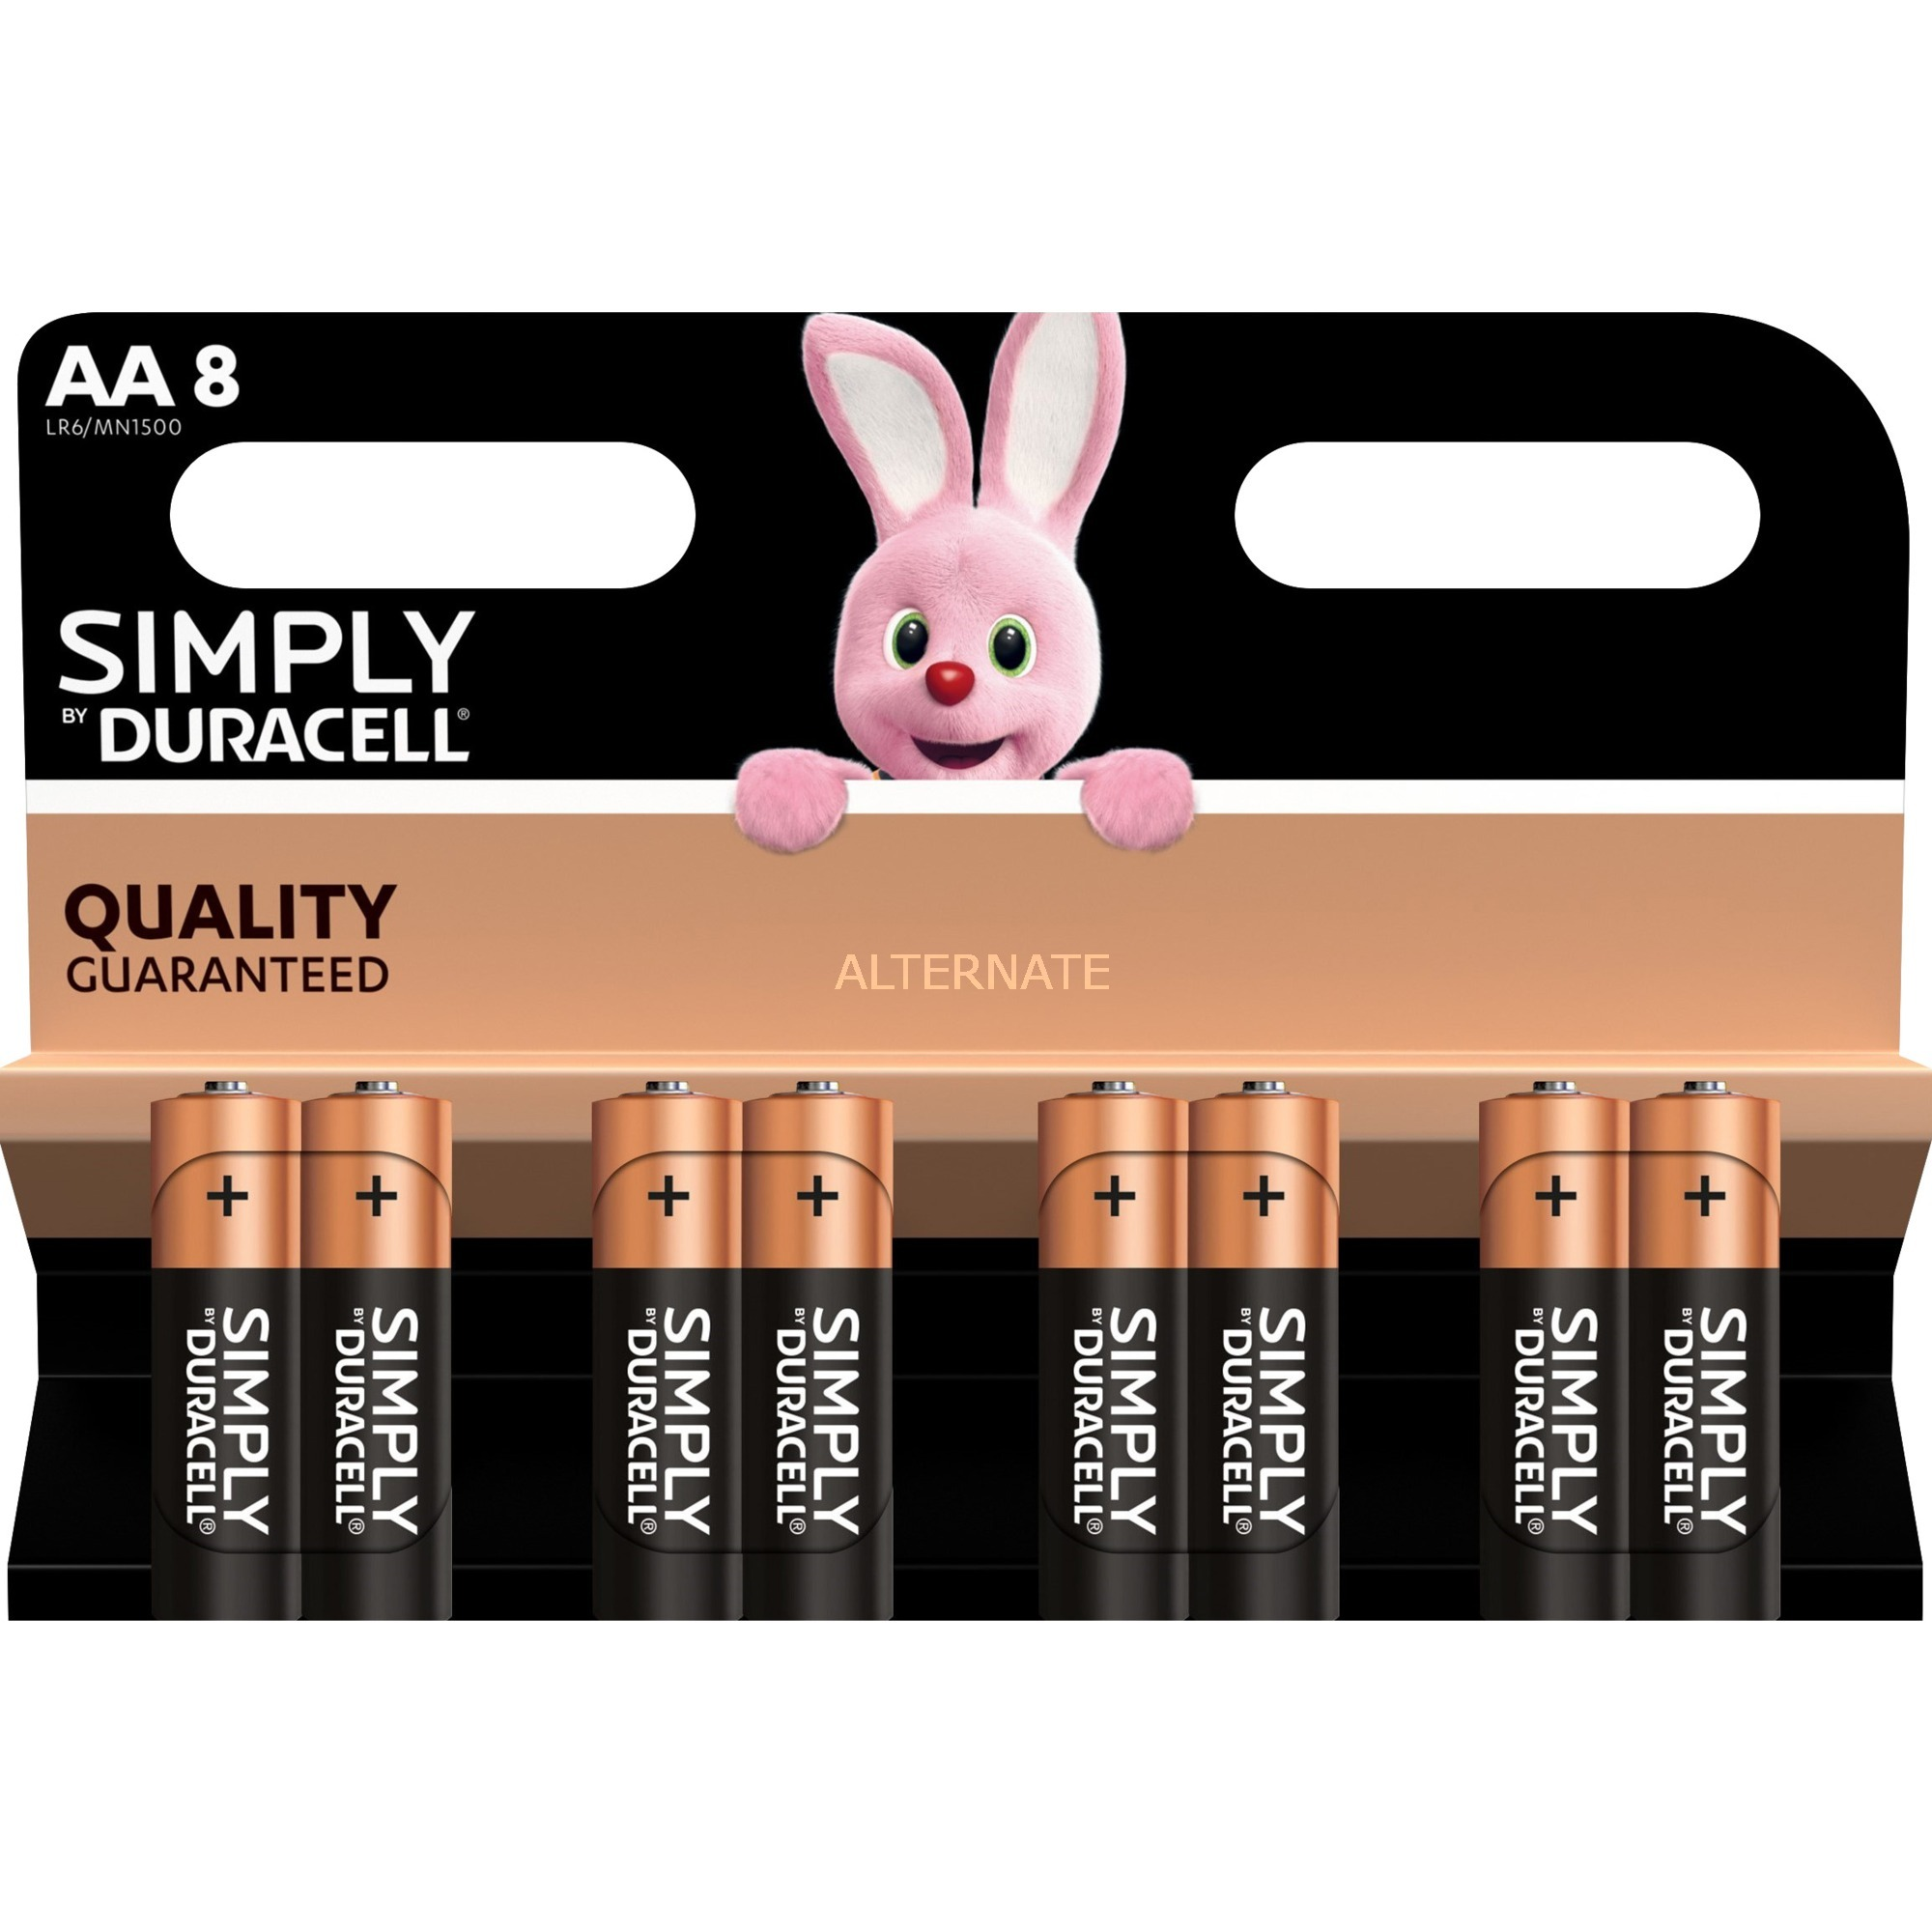 Simply Alcaline 1.5V pile non-rechargeable, Batterie